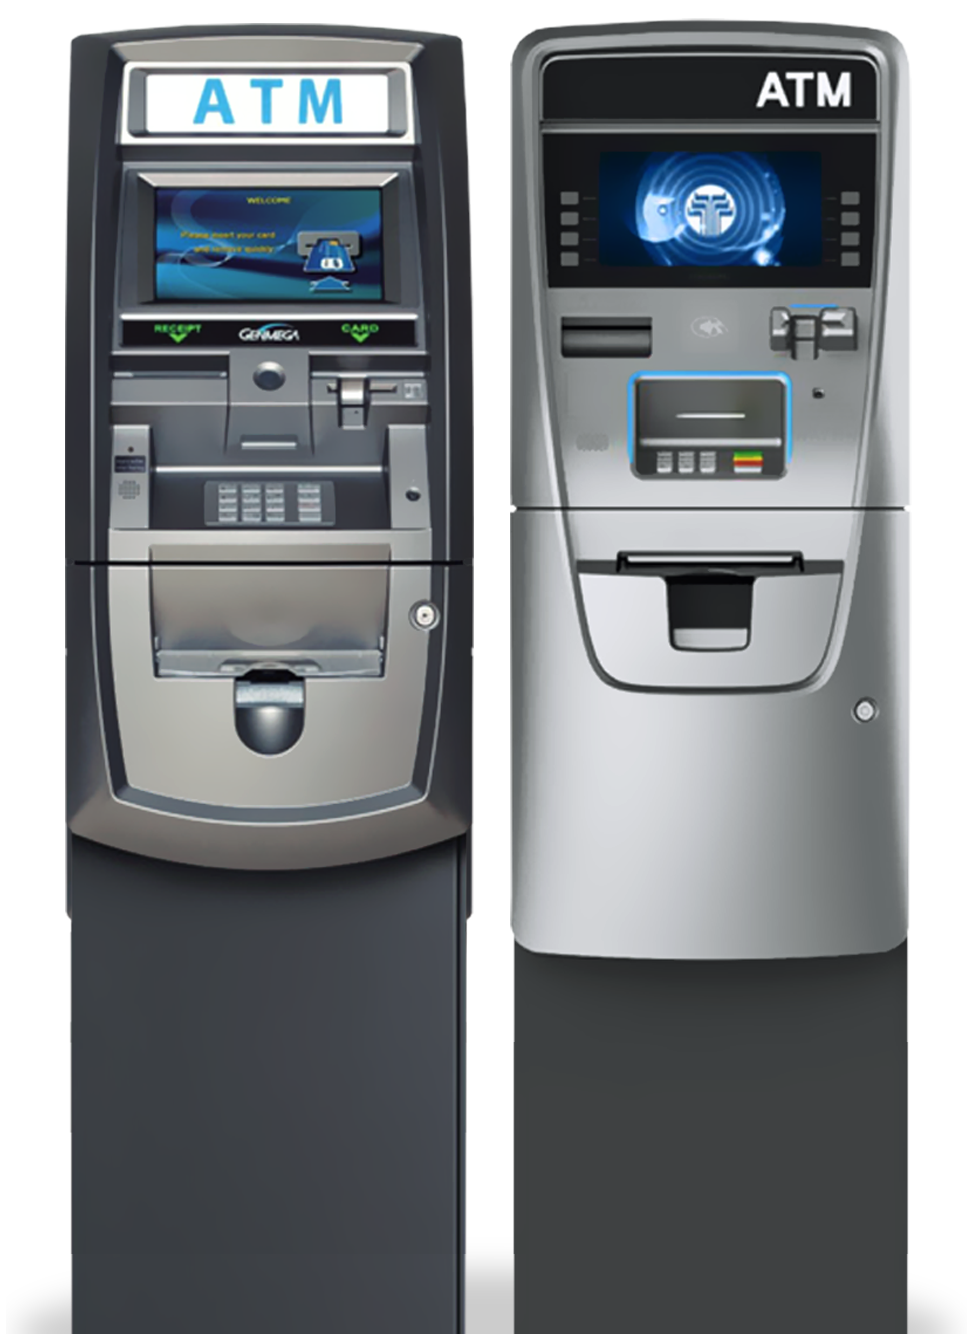 ATM services for merchants of all types with Genmega and Hysoung terminals.